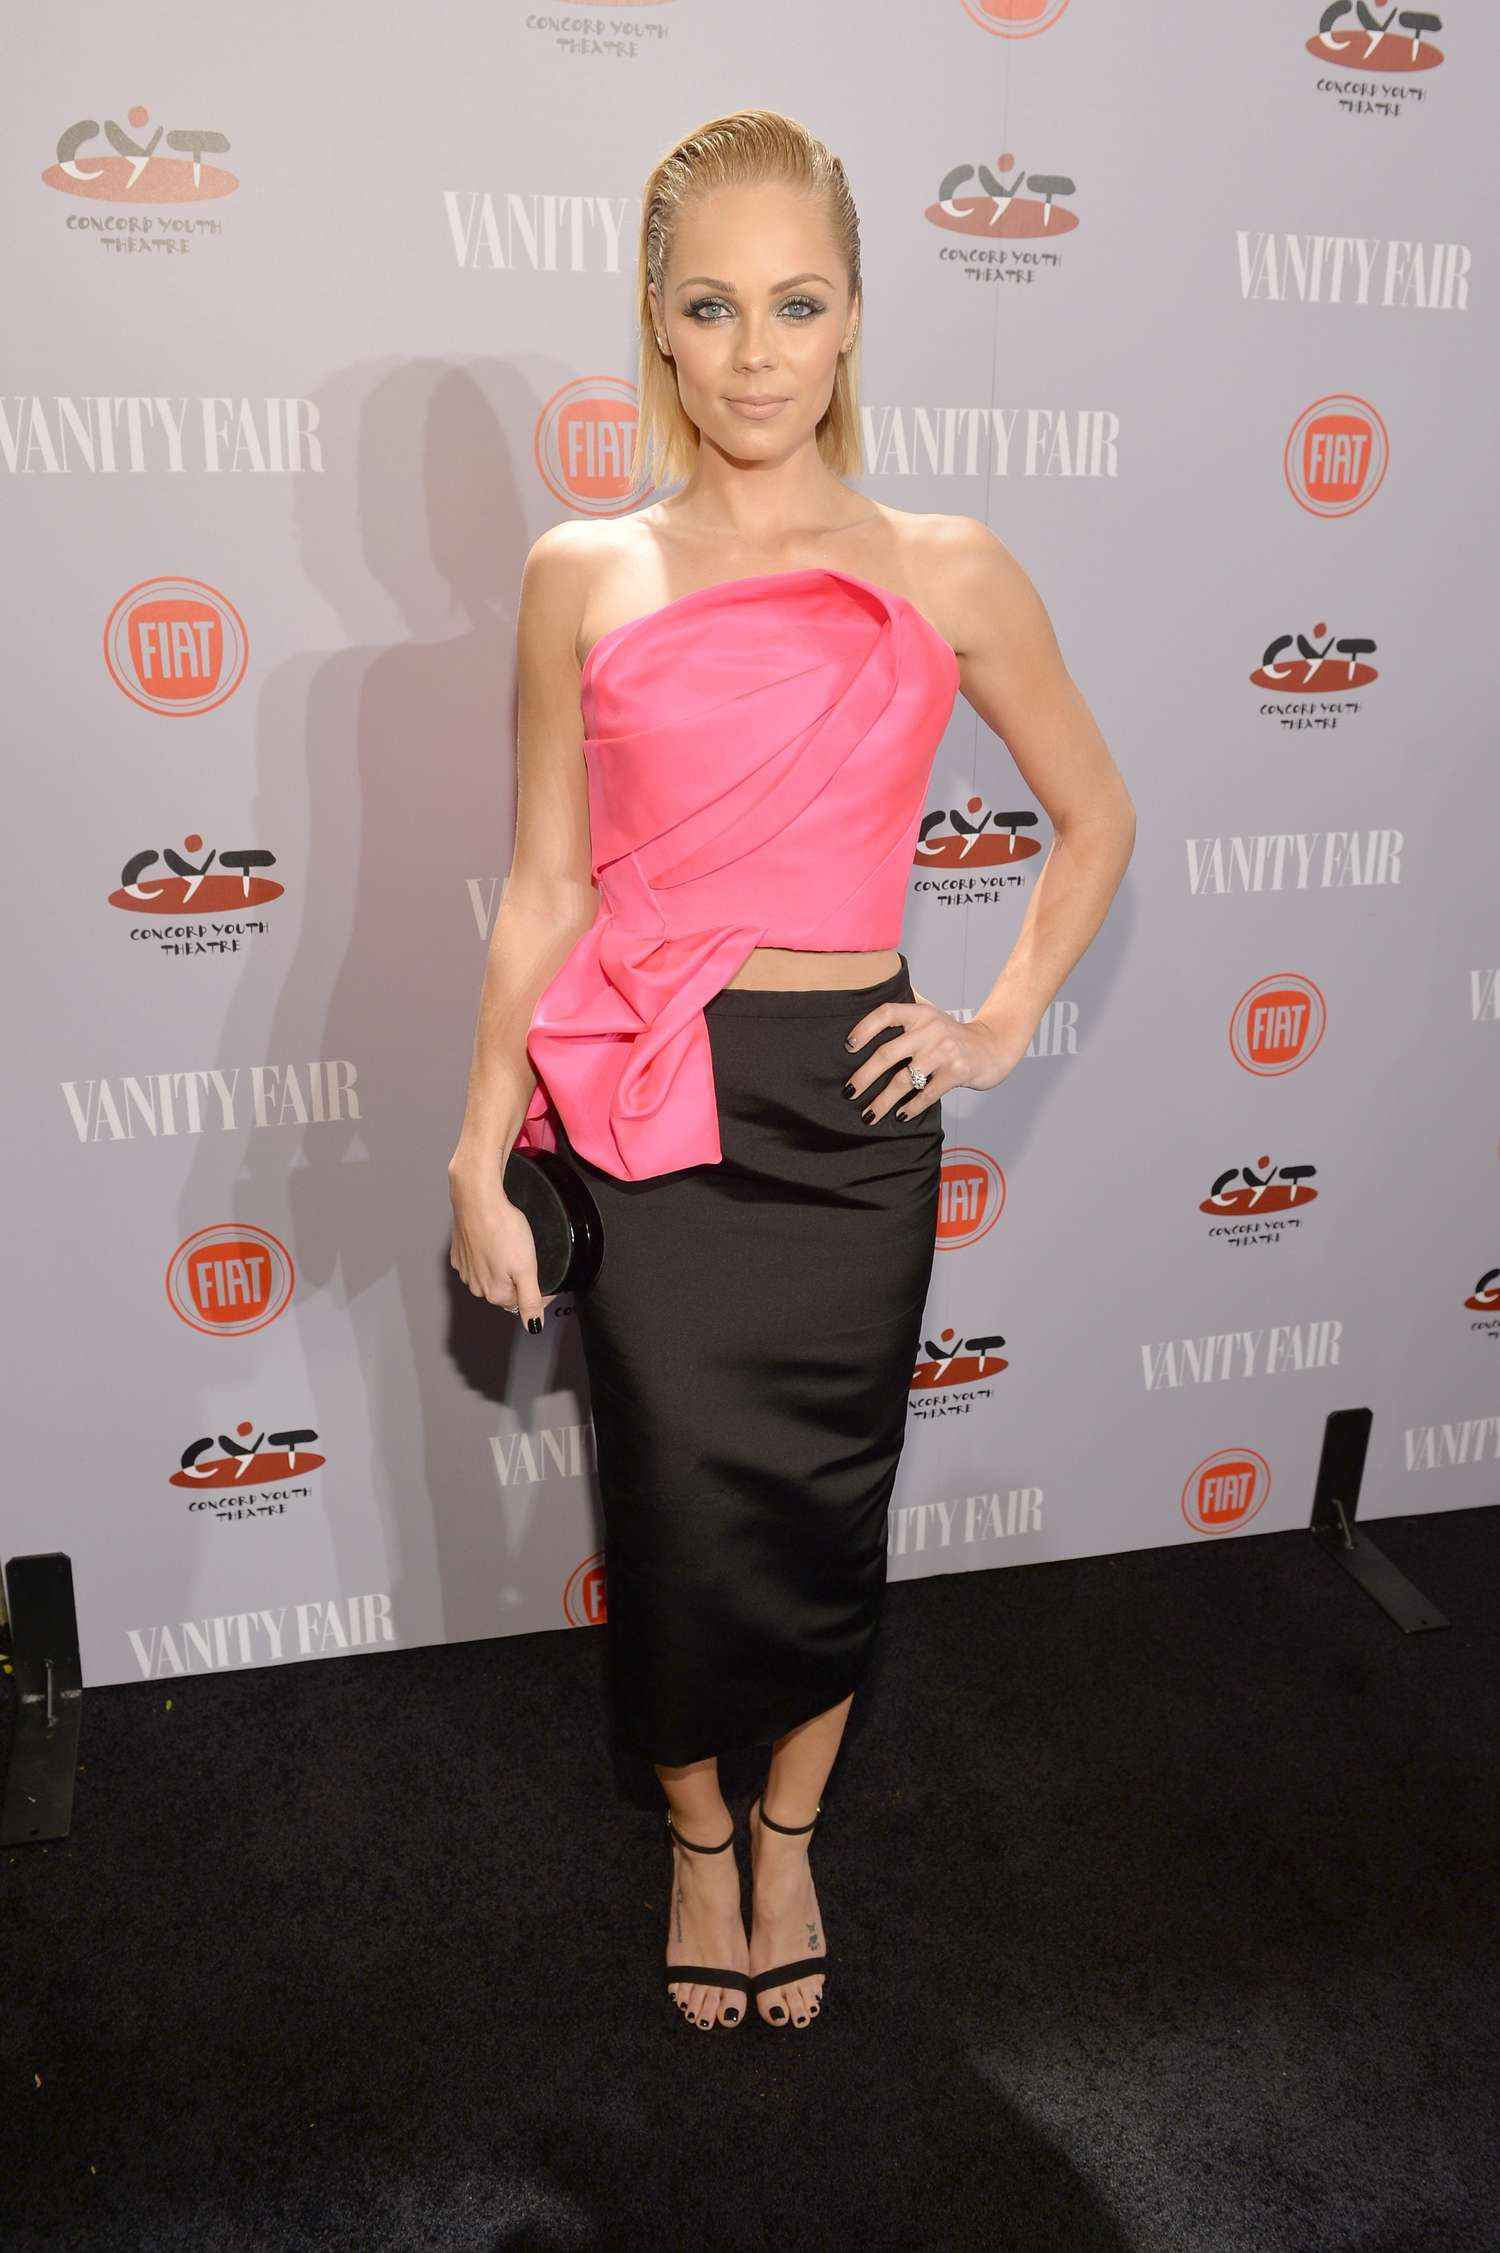 Laura Vandervoort Vanity Fair FIAT Young Hollywood Event in Los Angeles